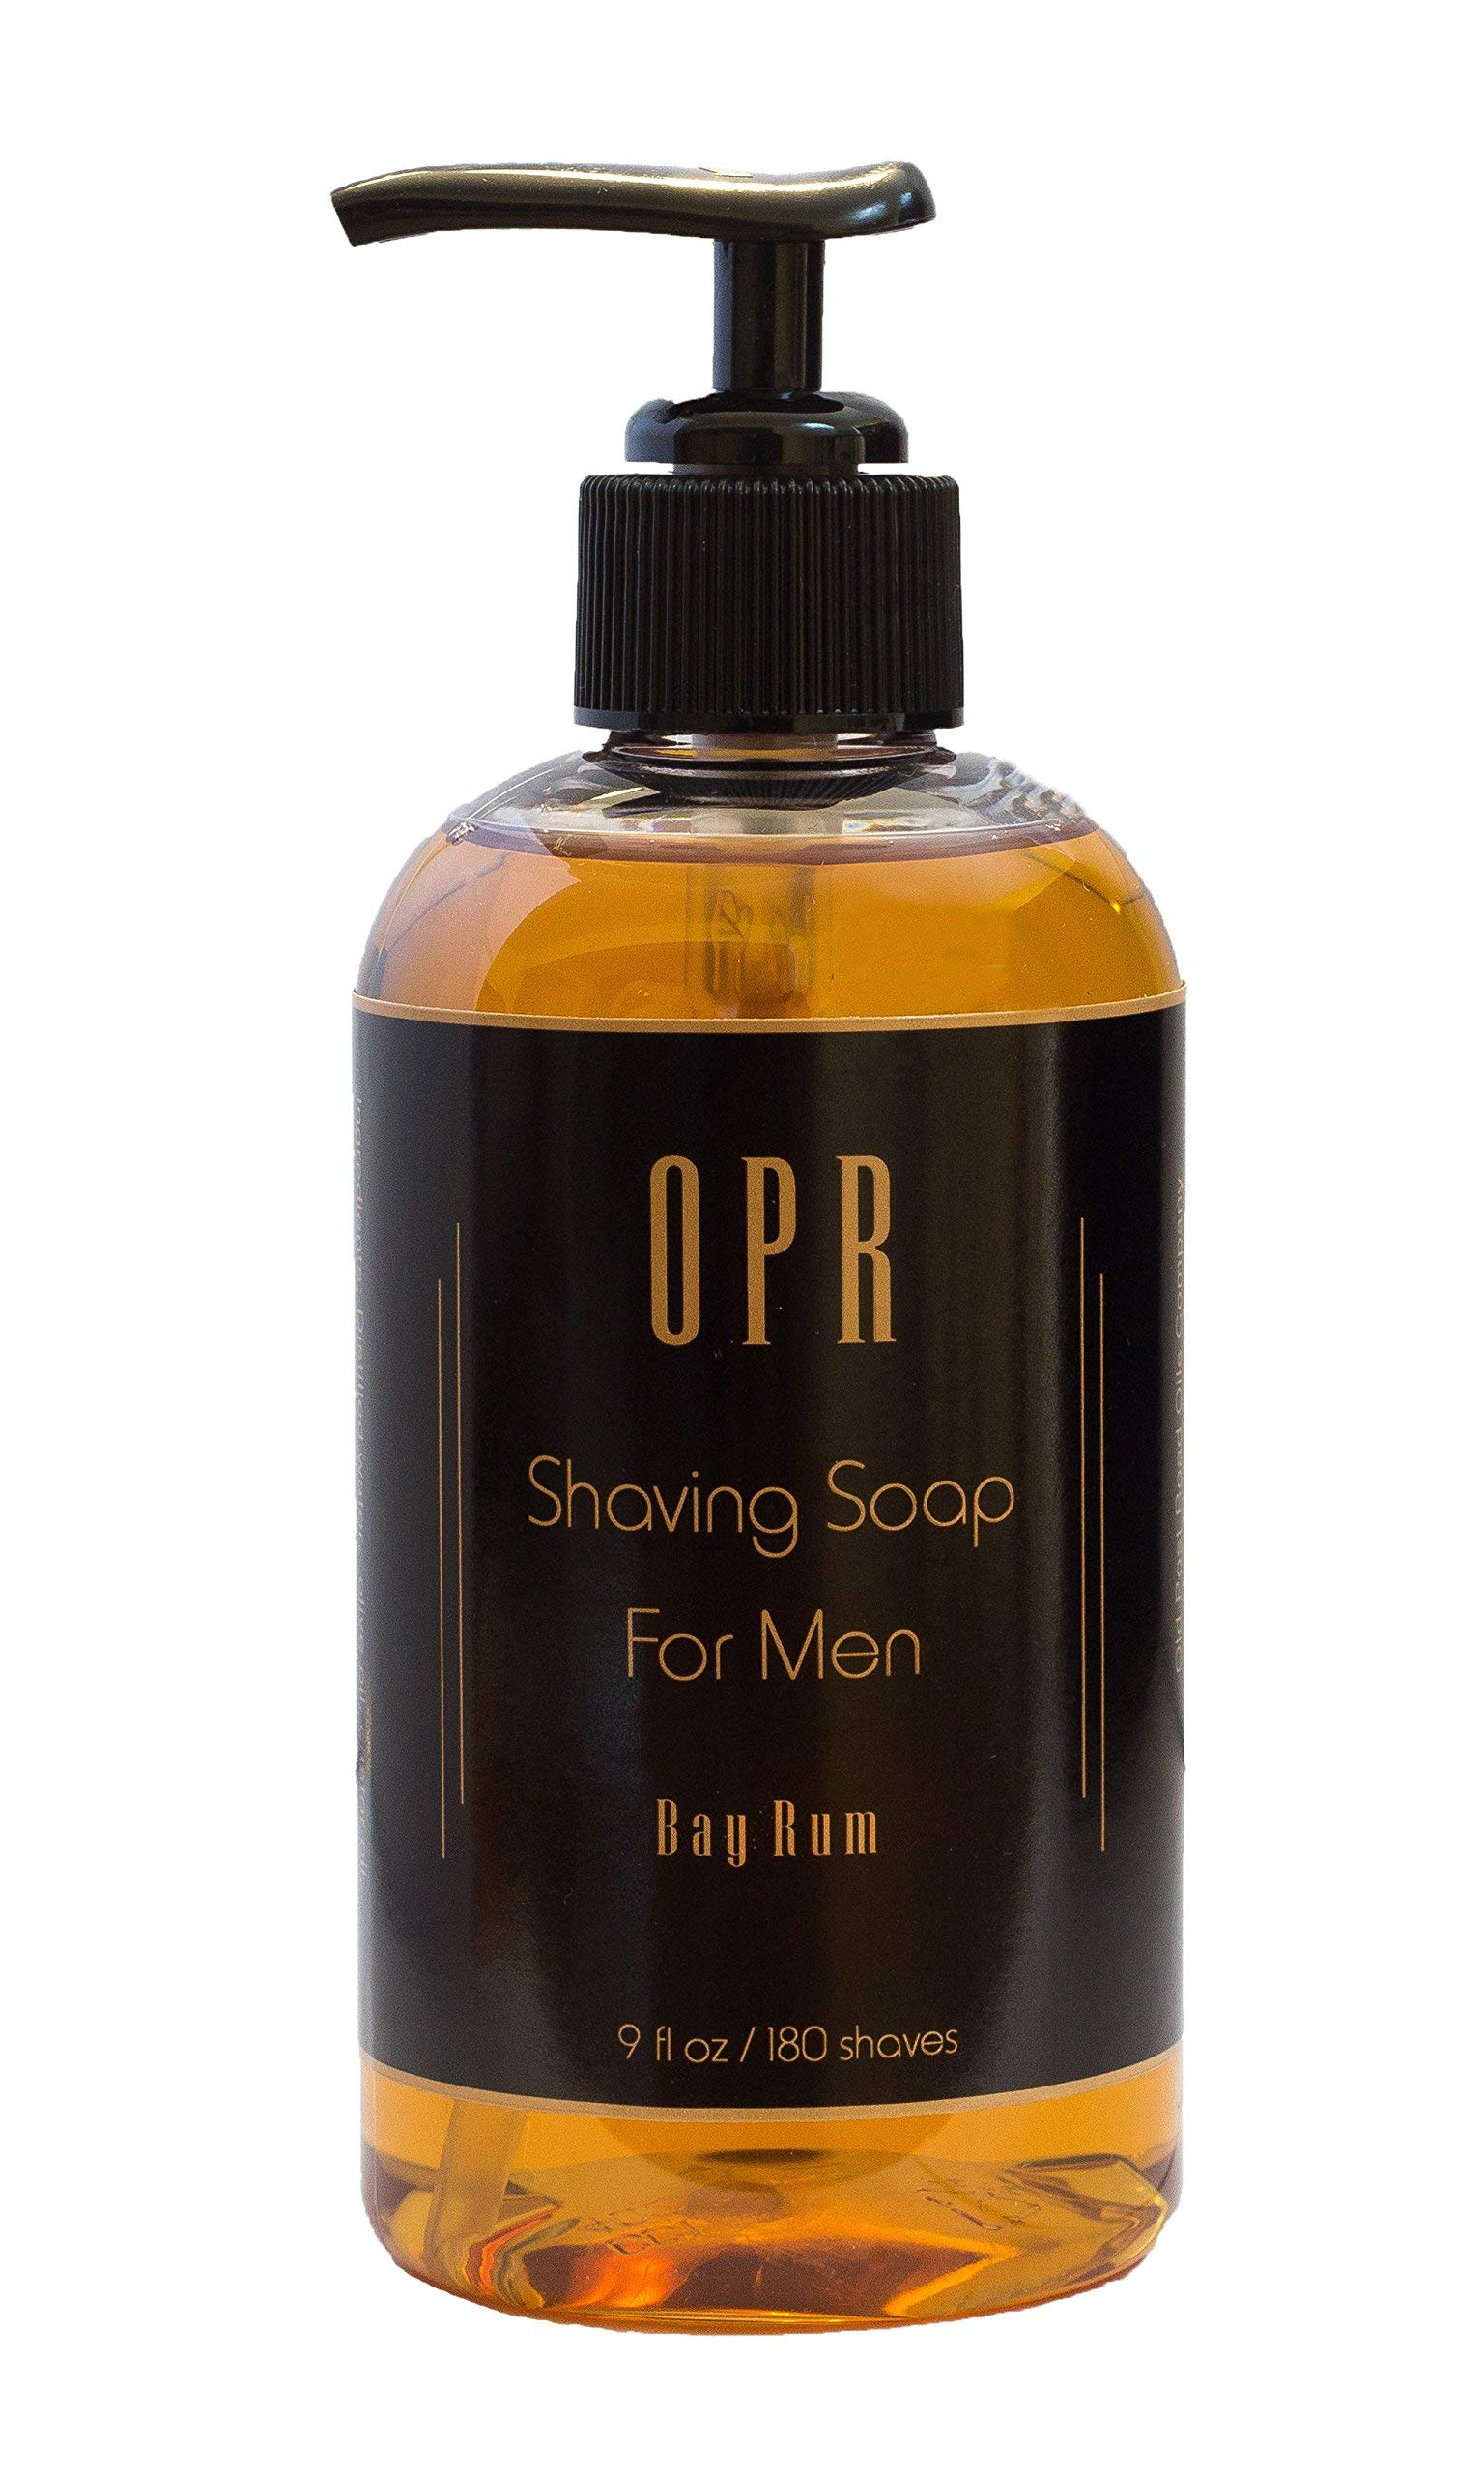 OPR's Bayrum Shave Soap is a Foam-Free Shaving Cream for Men that Gives Superior Lubrication, Leaves Skin Smooth, Smells Great, and Provides Up To 180 Shaves, No Shaving Soap Bowl or Mug Needed